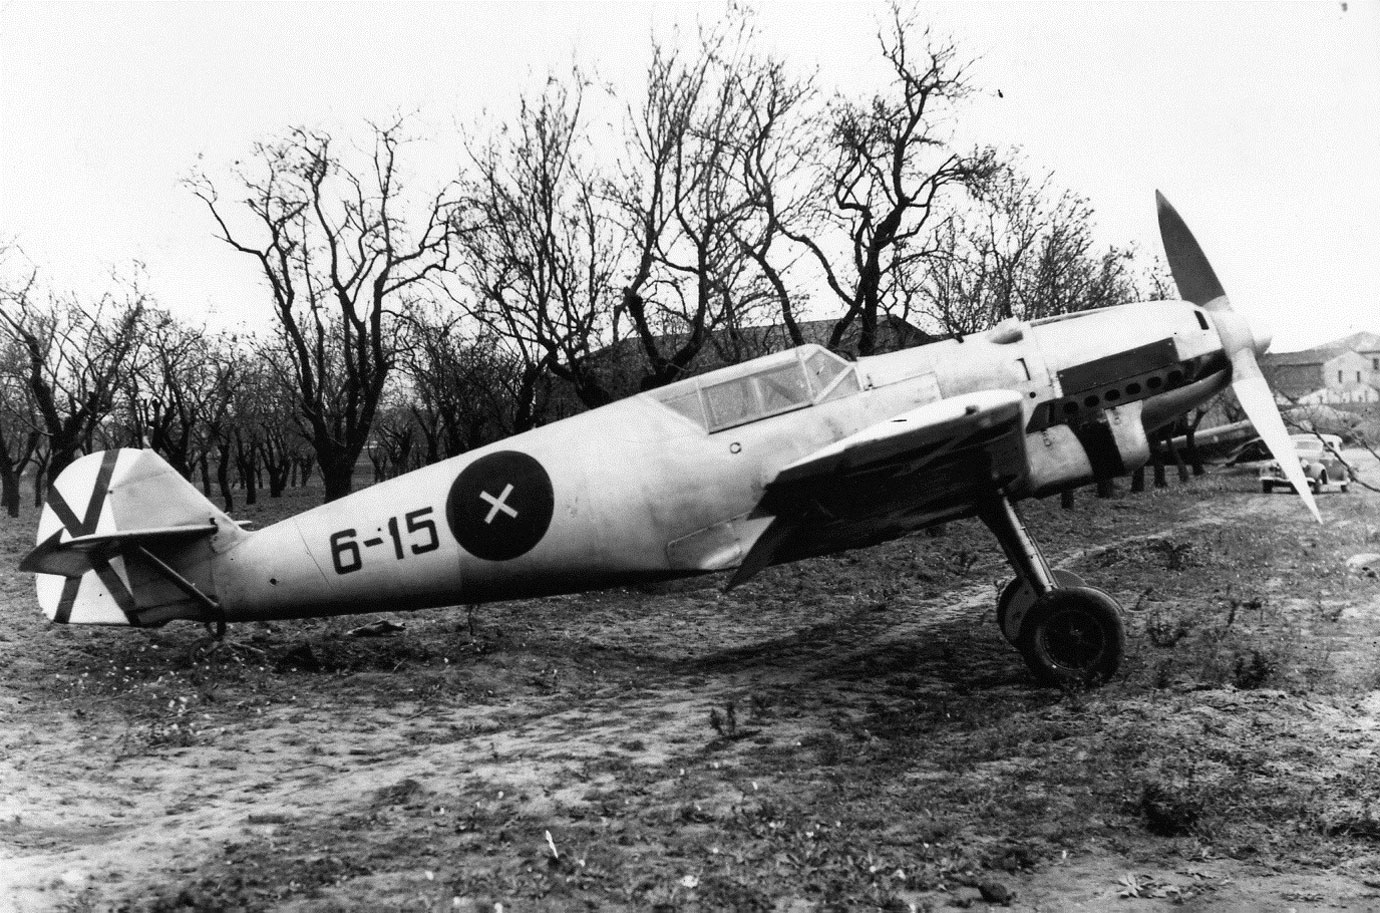 Messerschmitt-Bf109-A-6-15-2-J-88-Legion-Condor-Spain-1937